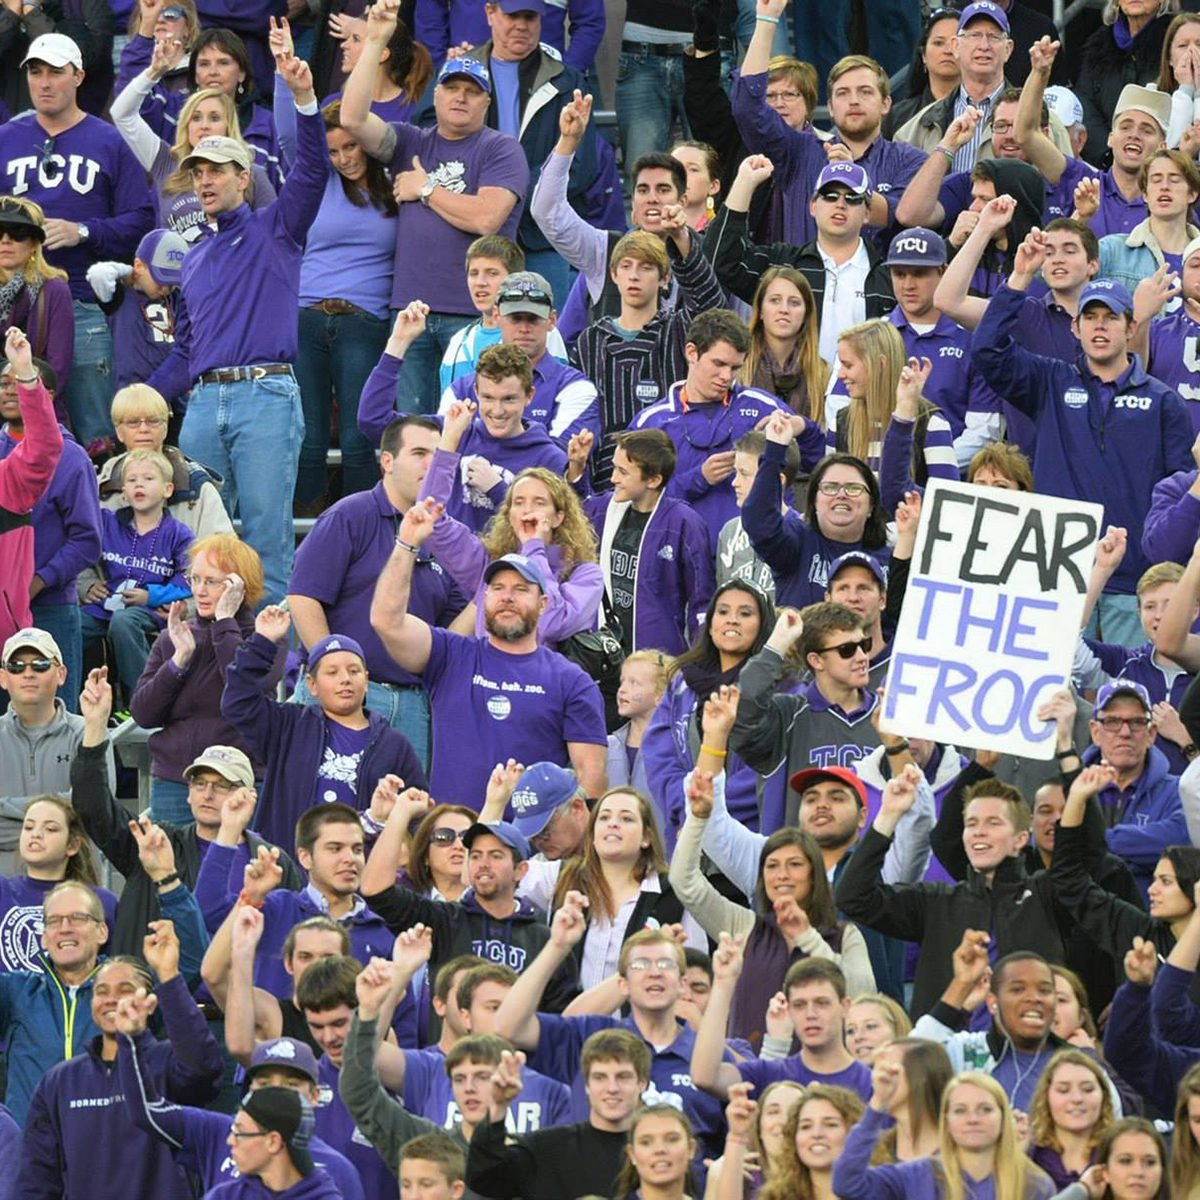 Texas Christian University fans at game